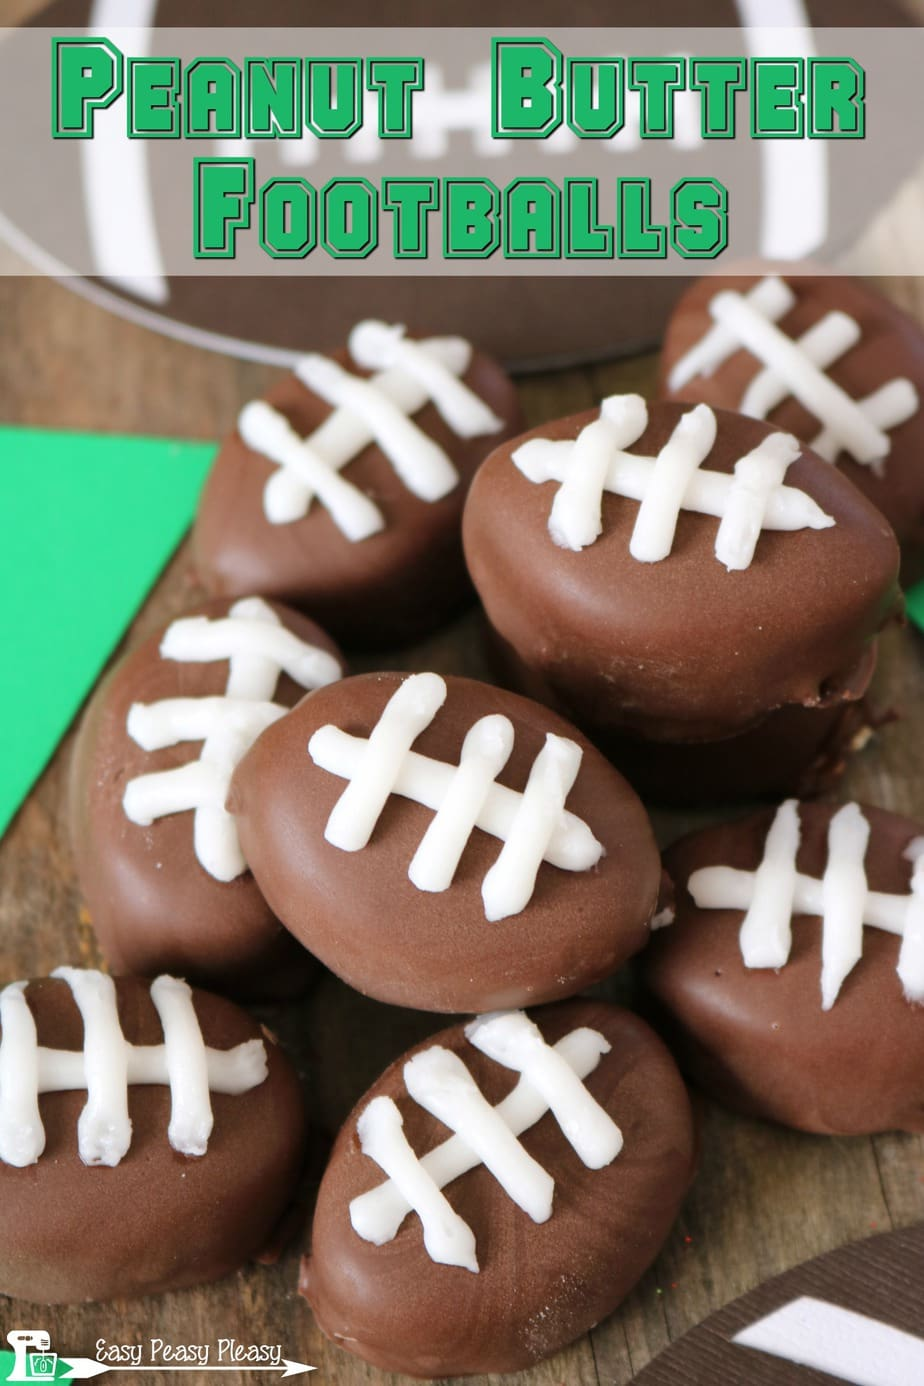 Easy Chocolate Covered Peanut Butter Balls are getting a makeover for the perfect game day and Super Bowl sweet treat!